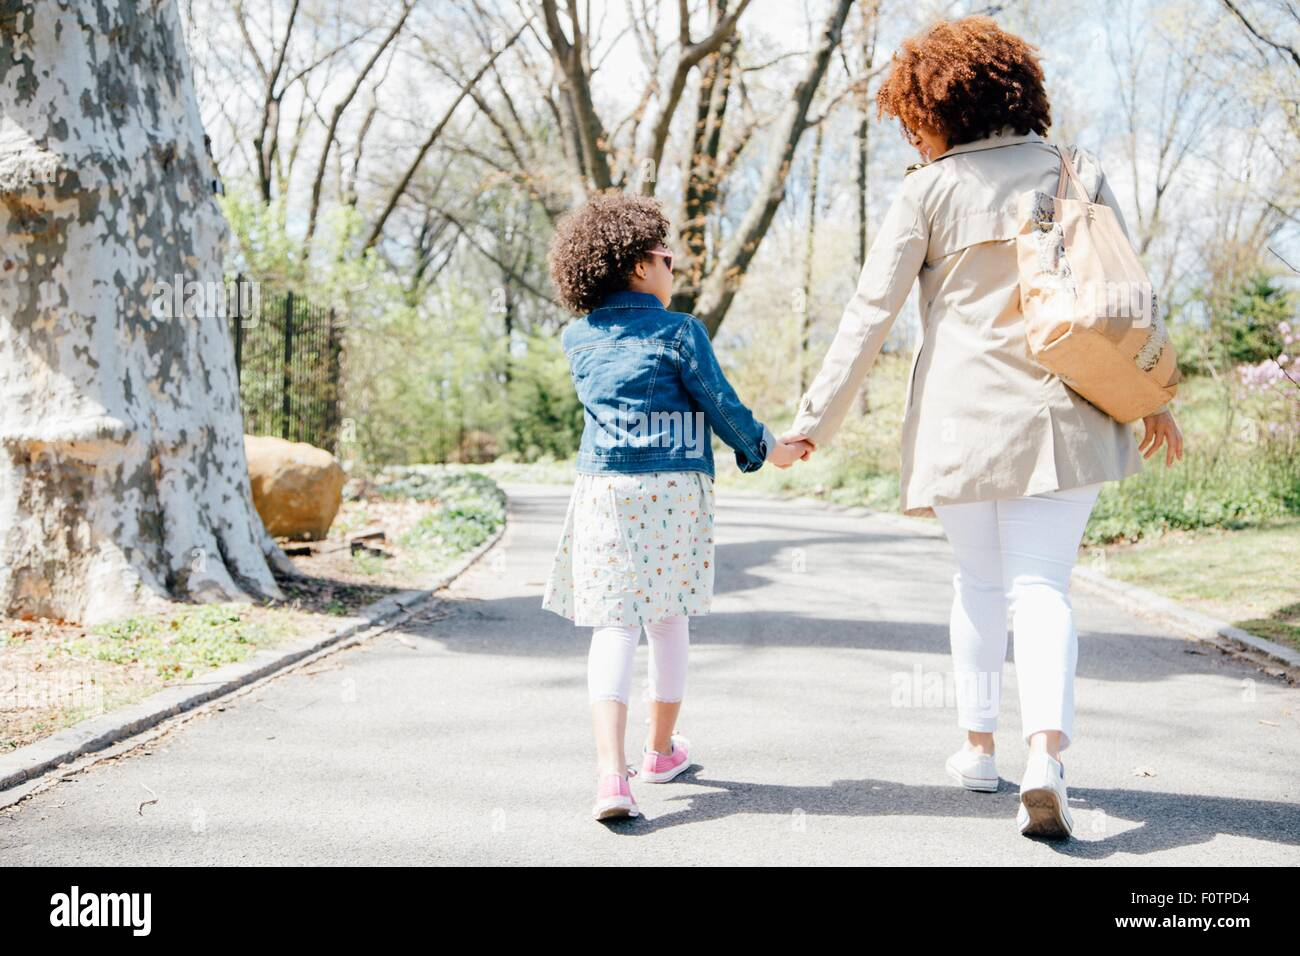 Full length rear view of mother and daughter walking holding hands - Stock Image